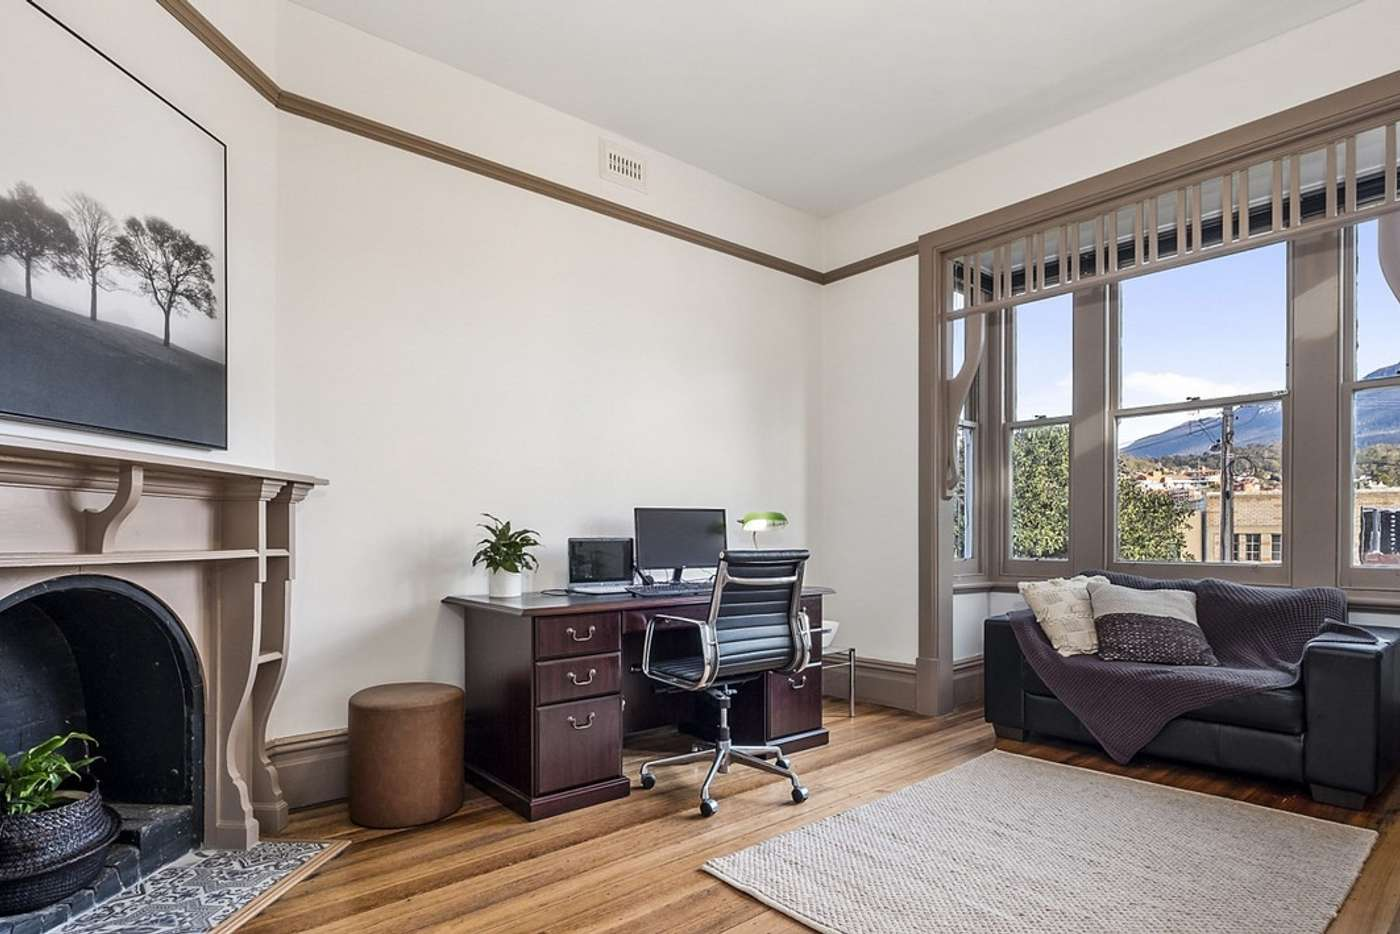 Seventh view of Homely house listing, 1 Pirie Street, New Town TAS 7008